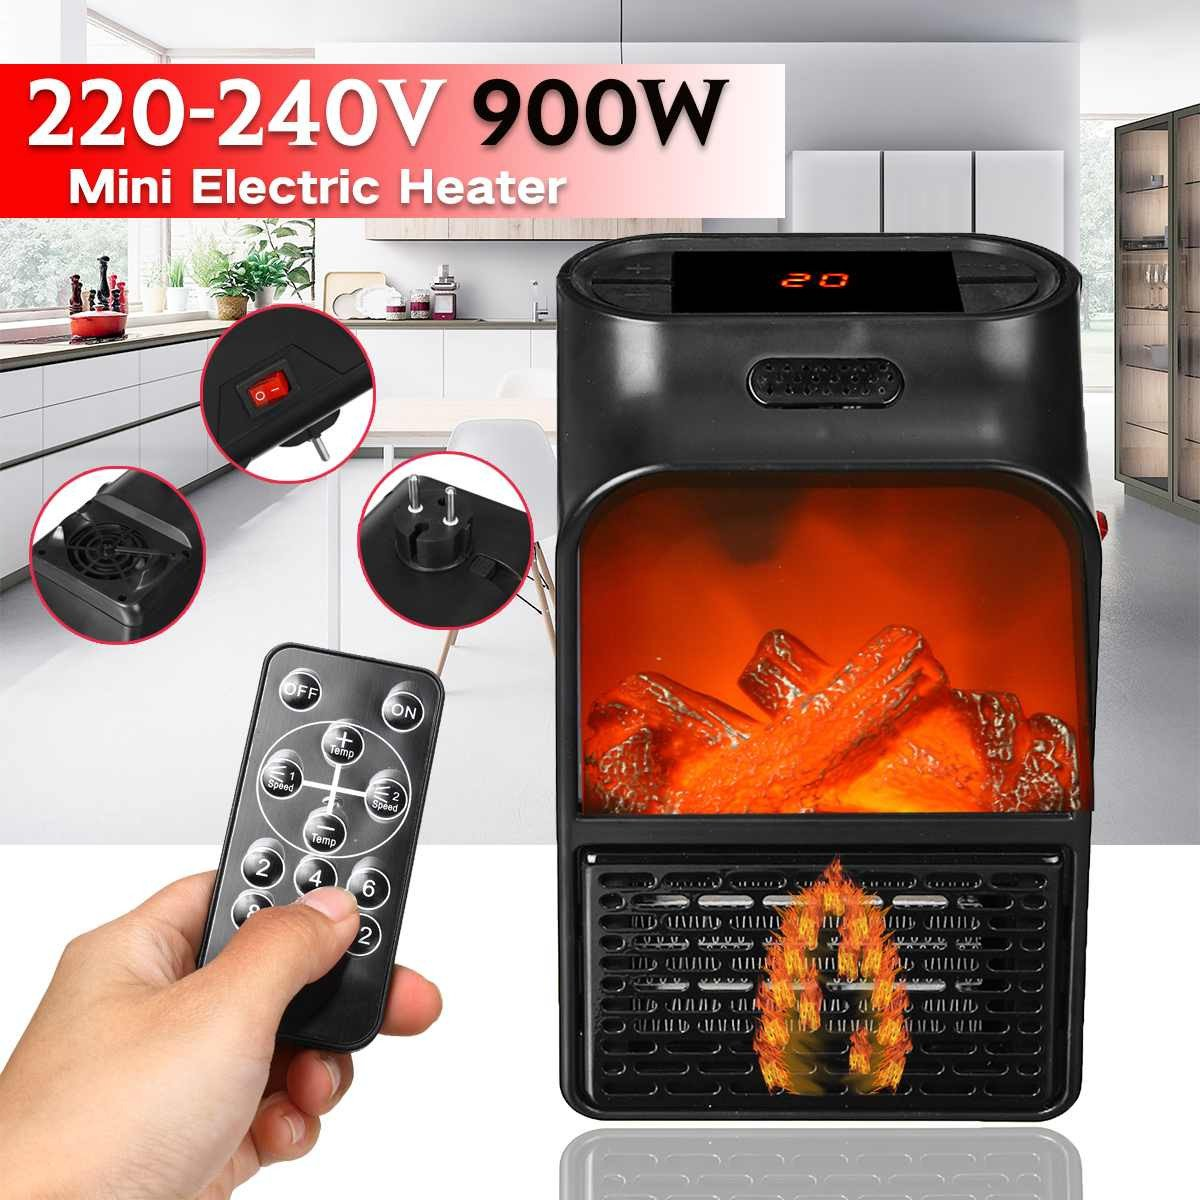 Small Heaters for Bedroom Luxury 900w Mini Electric Heater Portable Electric Space Room Heater Air Heating Space Winter Warmer Machine with Remote Control